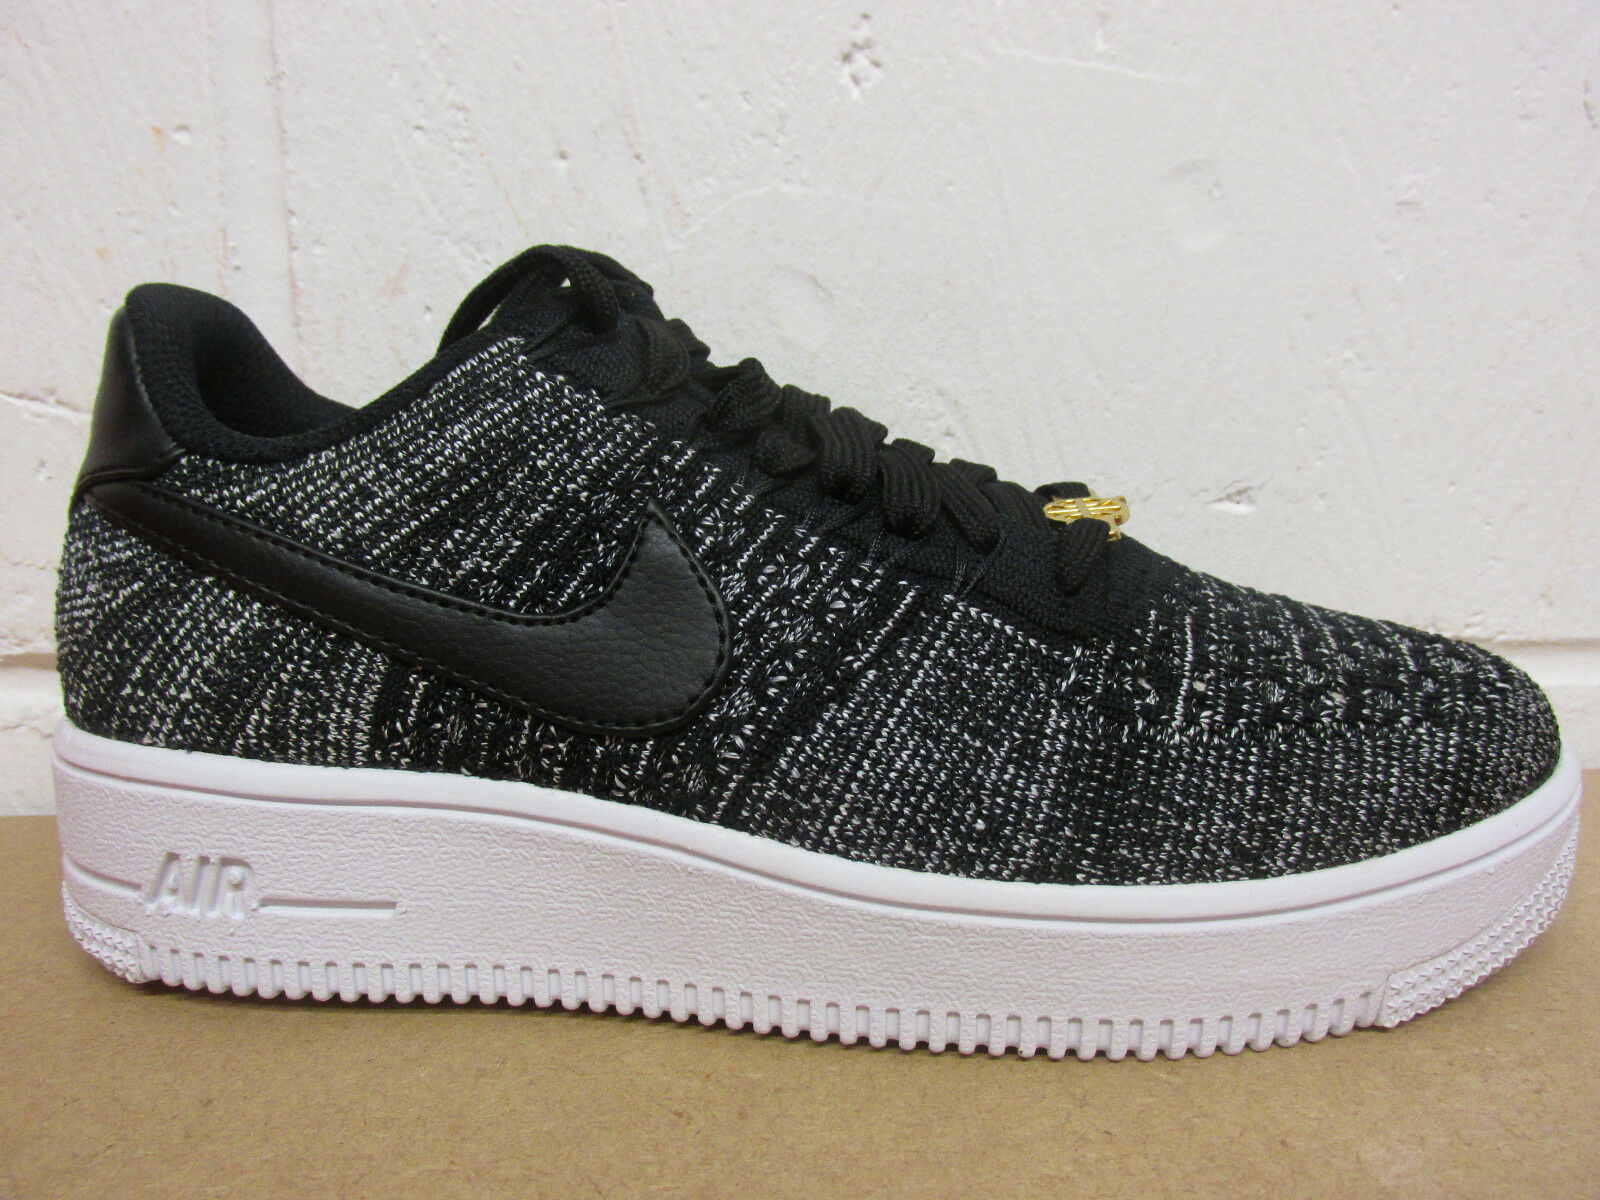 Af1 Nike Air Force 1 Ultra 853880 Flyknit Uomo Correndo I Formatori 853880 Ultra 001. 1021c0